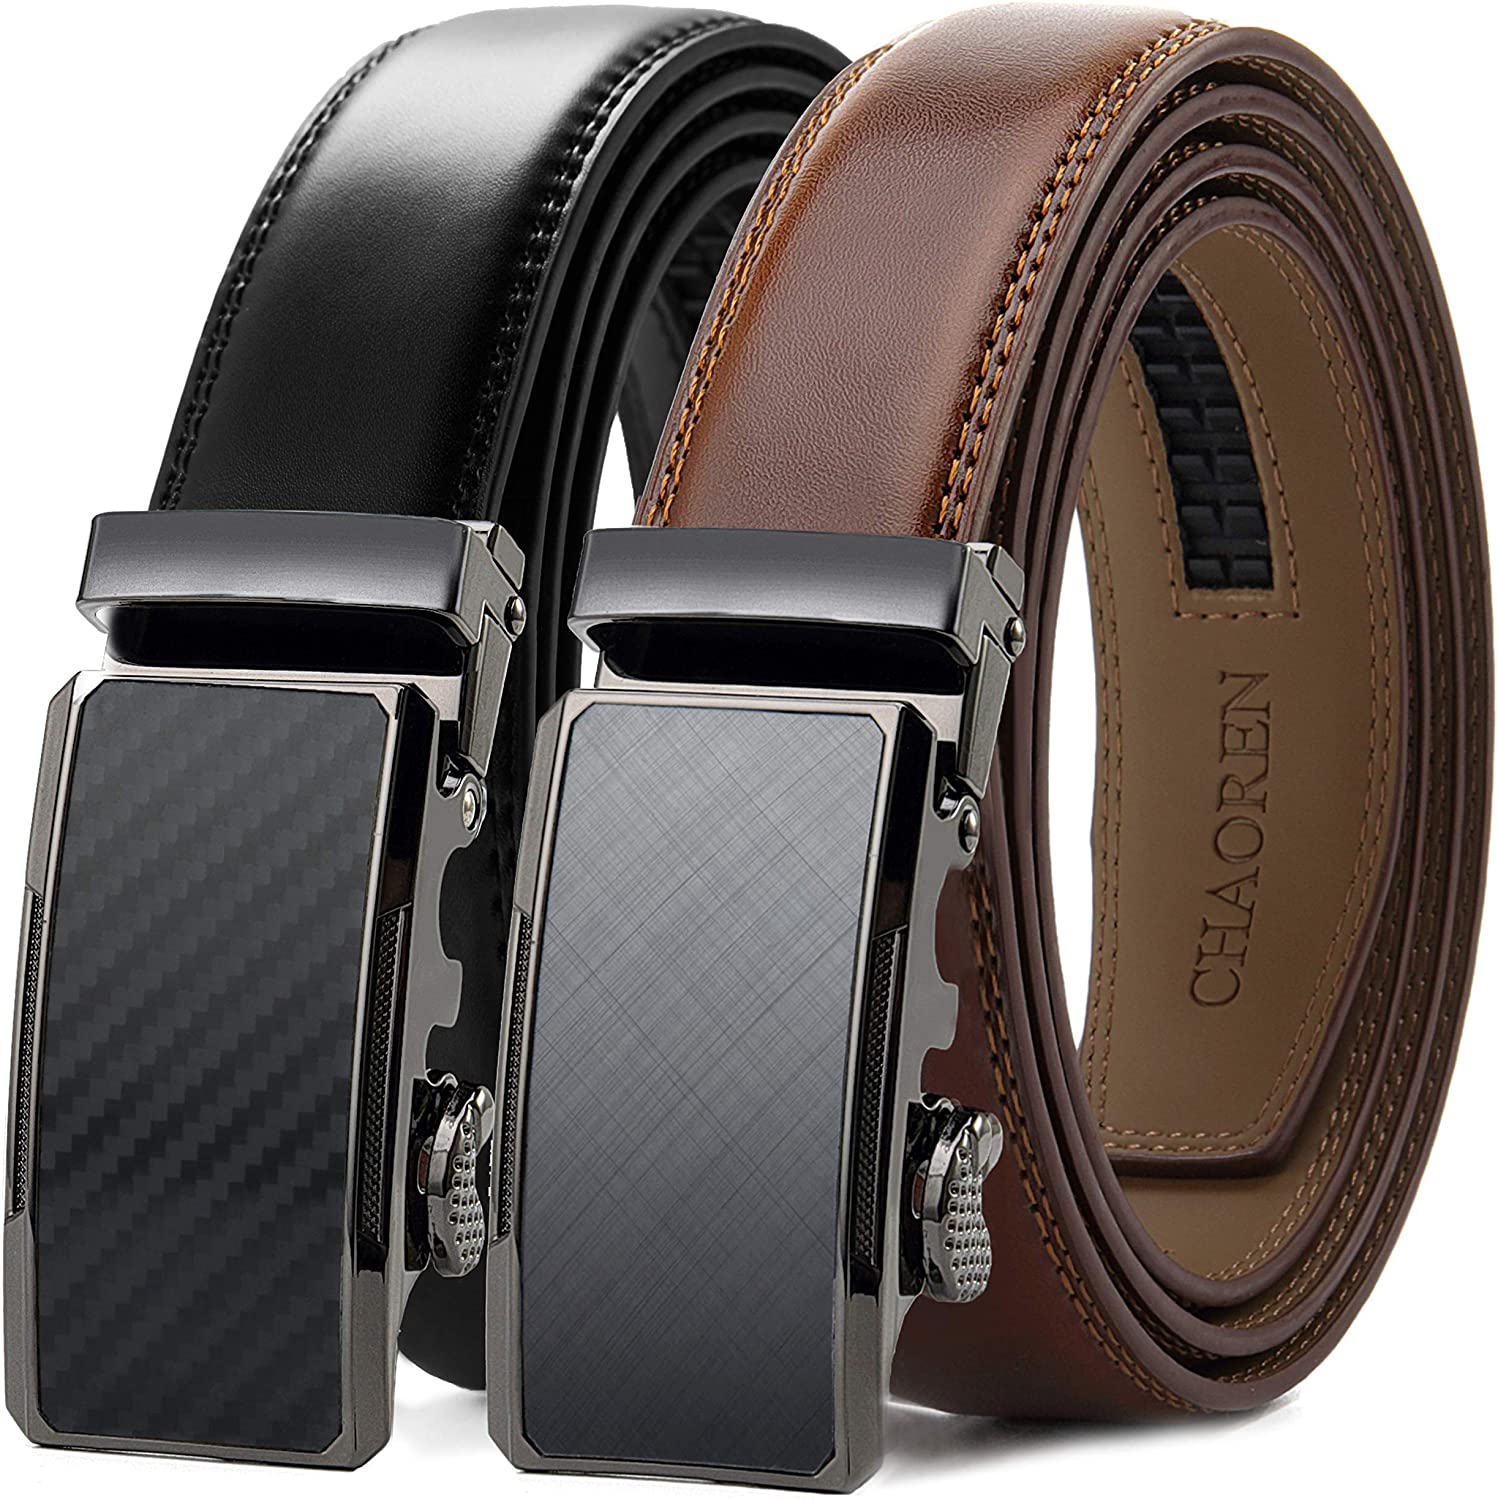 Chaoren Leather Ratchet Slide Belt 2 Pack with Click Buckle 1 1/4